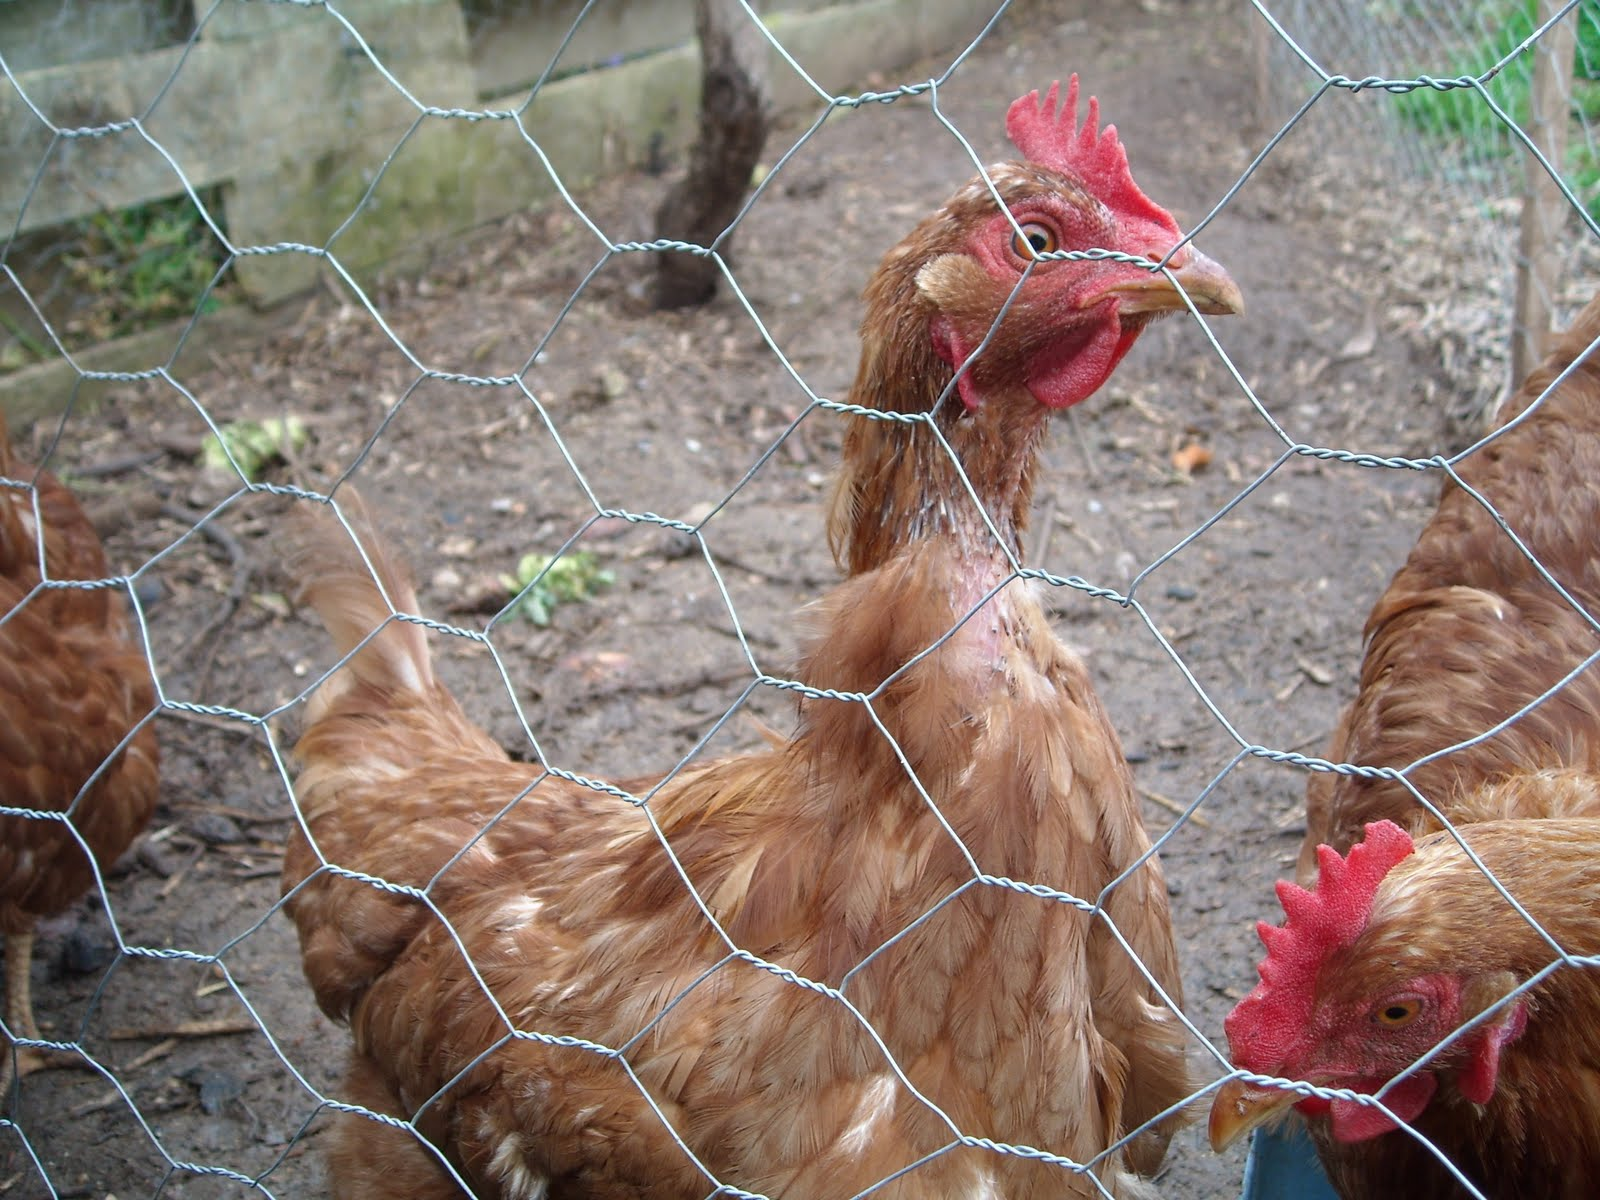 Feather Lice Chickens http://zucchiniisland.blogspot.com/2011/07/keep-chickens-warm-in-winter.html